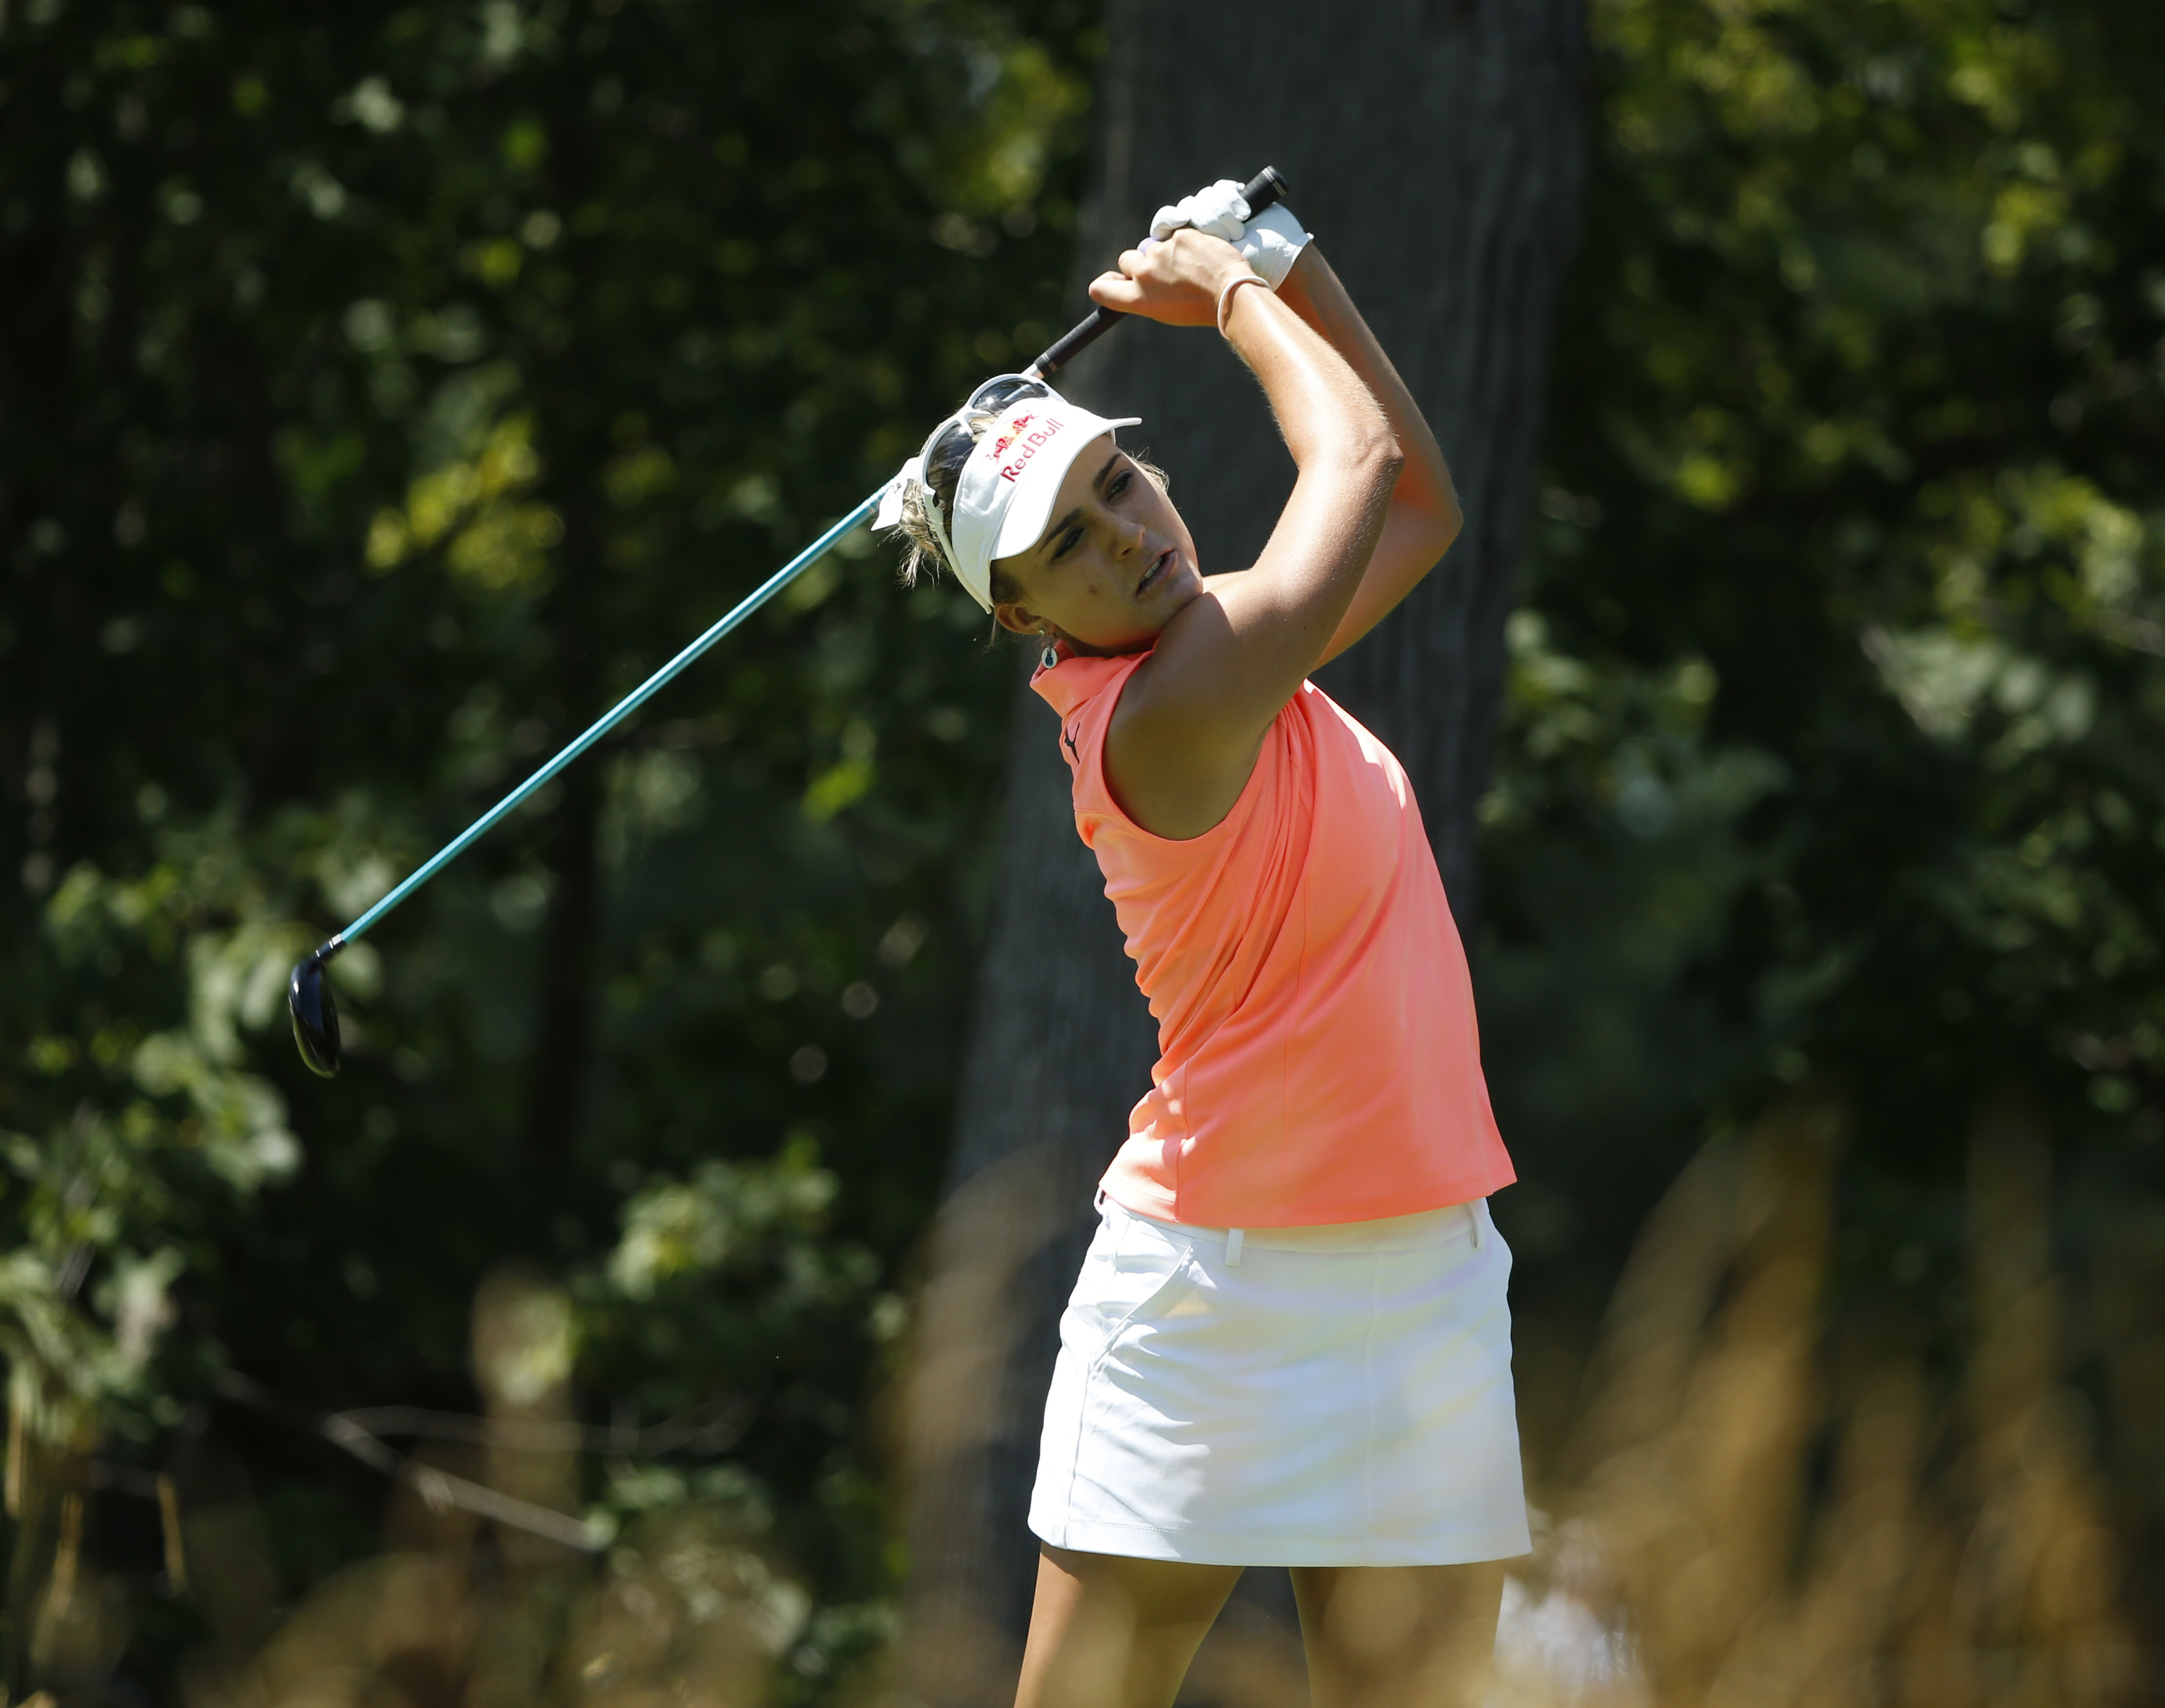 Lexi Thompson watches her tee shot on the fifth hole during the third round of the Women's PGA Championship golf tournament at Olympia Fields Country Club Saturday, July 1, 2017, in Olympia Fields, Ill. (AP Photo/Charles Rex Arbogast)